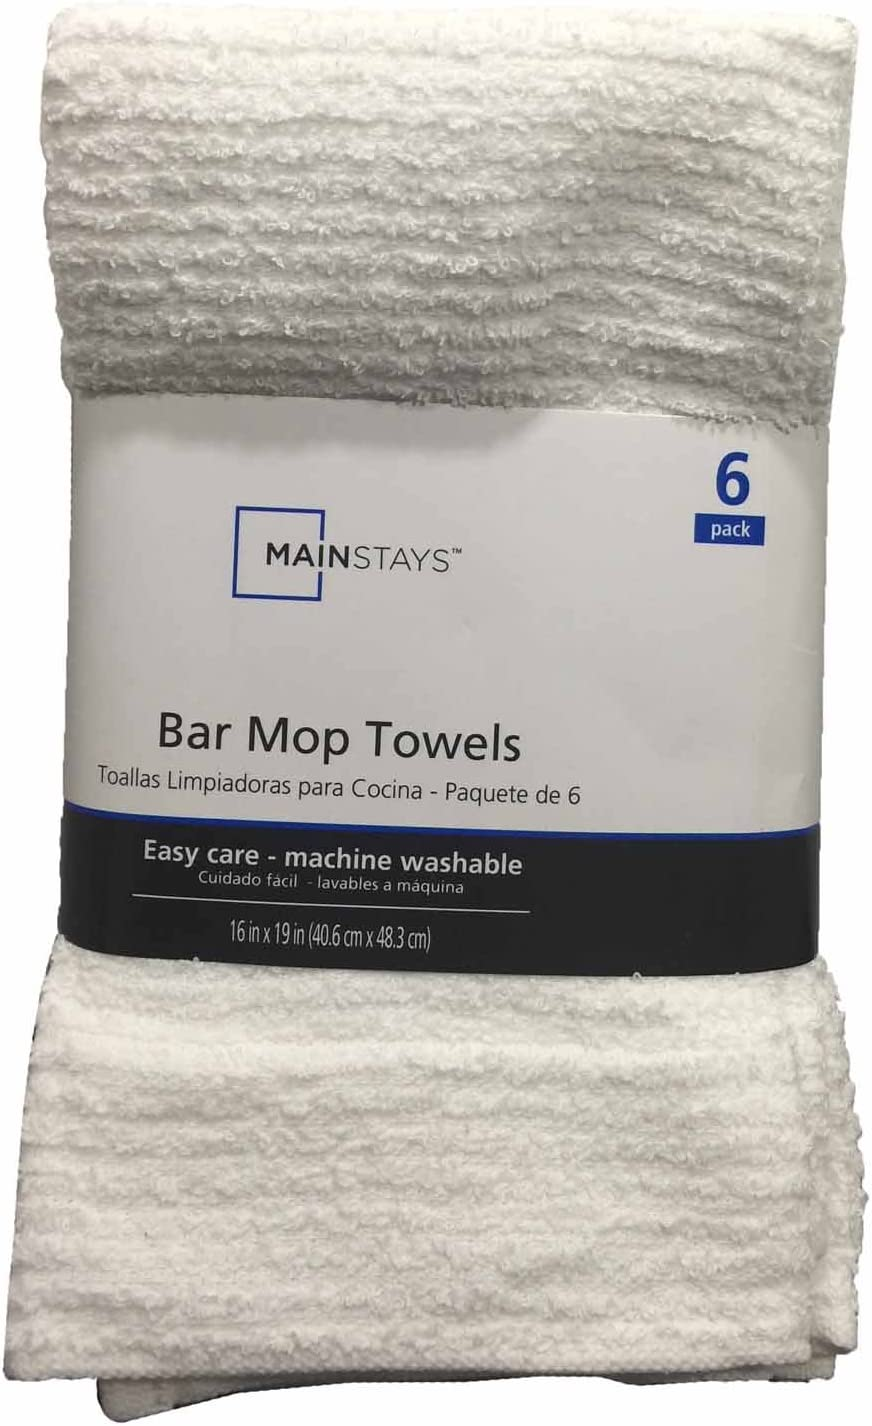 Mainstay Bar Mop Towels 6 Pack White Amazon Co Uk Kitchen Home